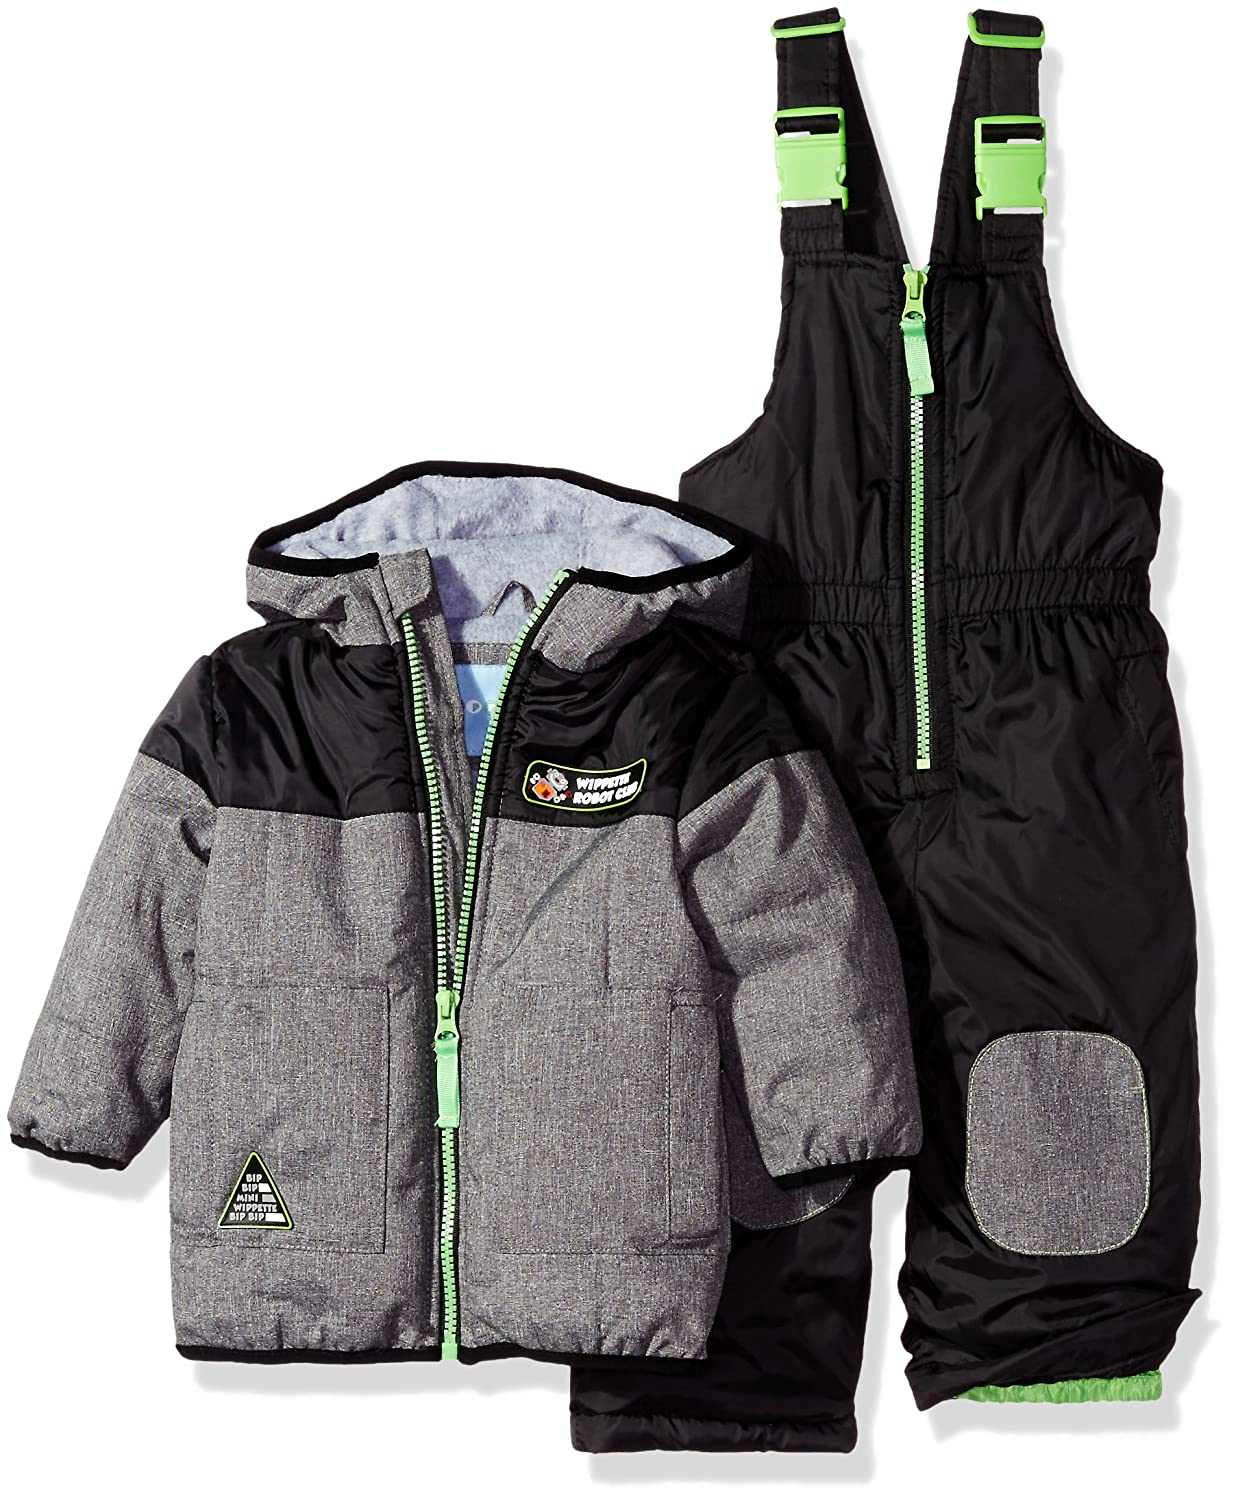 Wippette Boys Baby Yd Cire Snowsuit